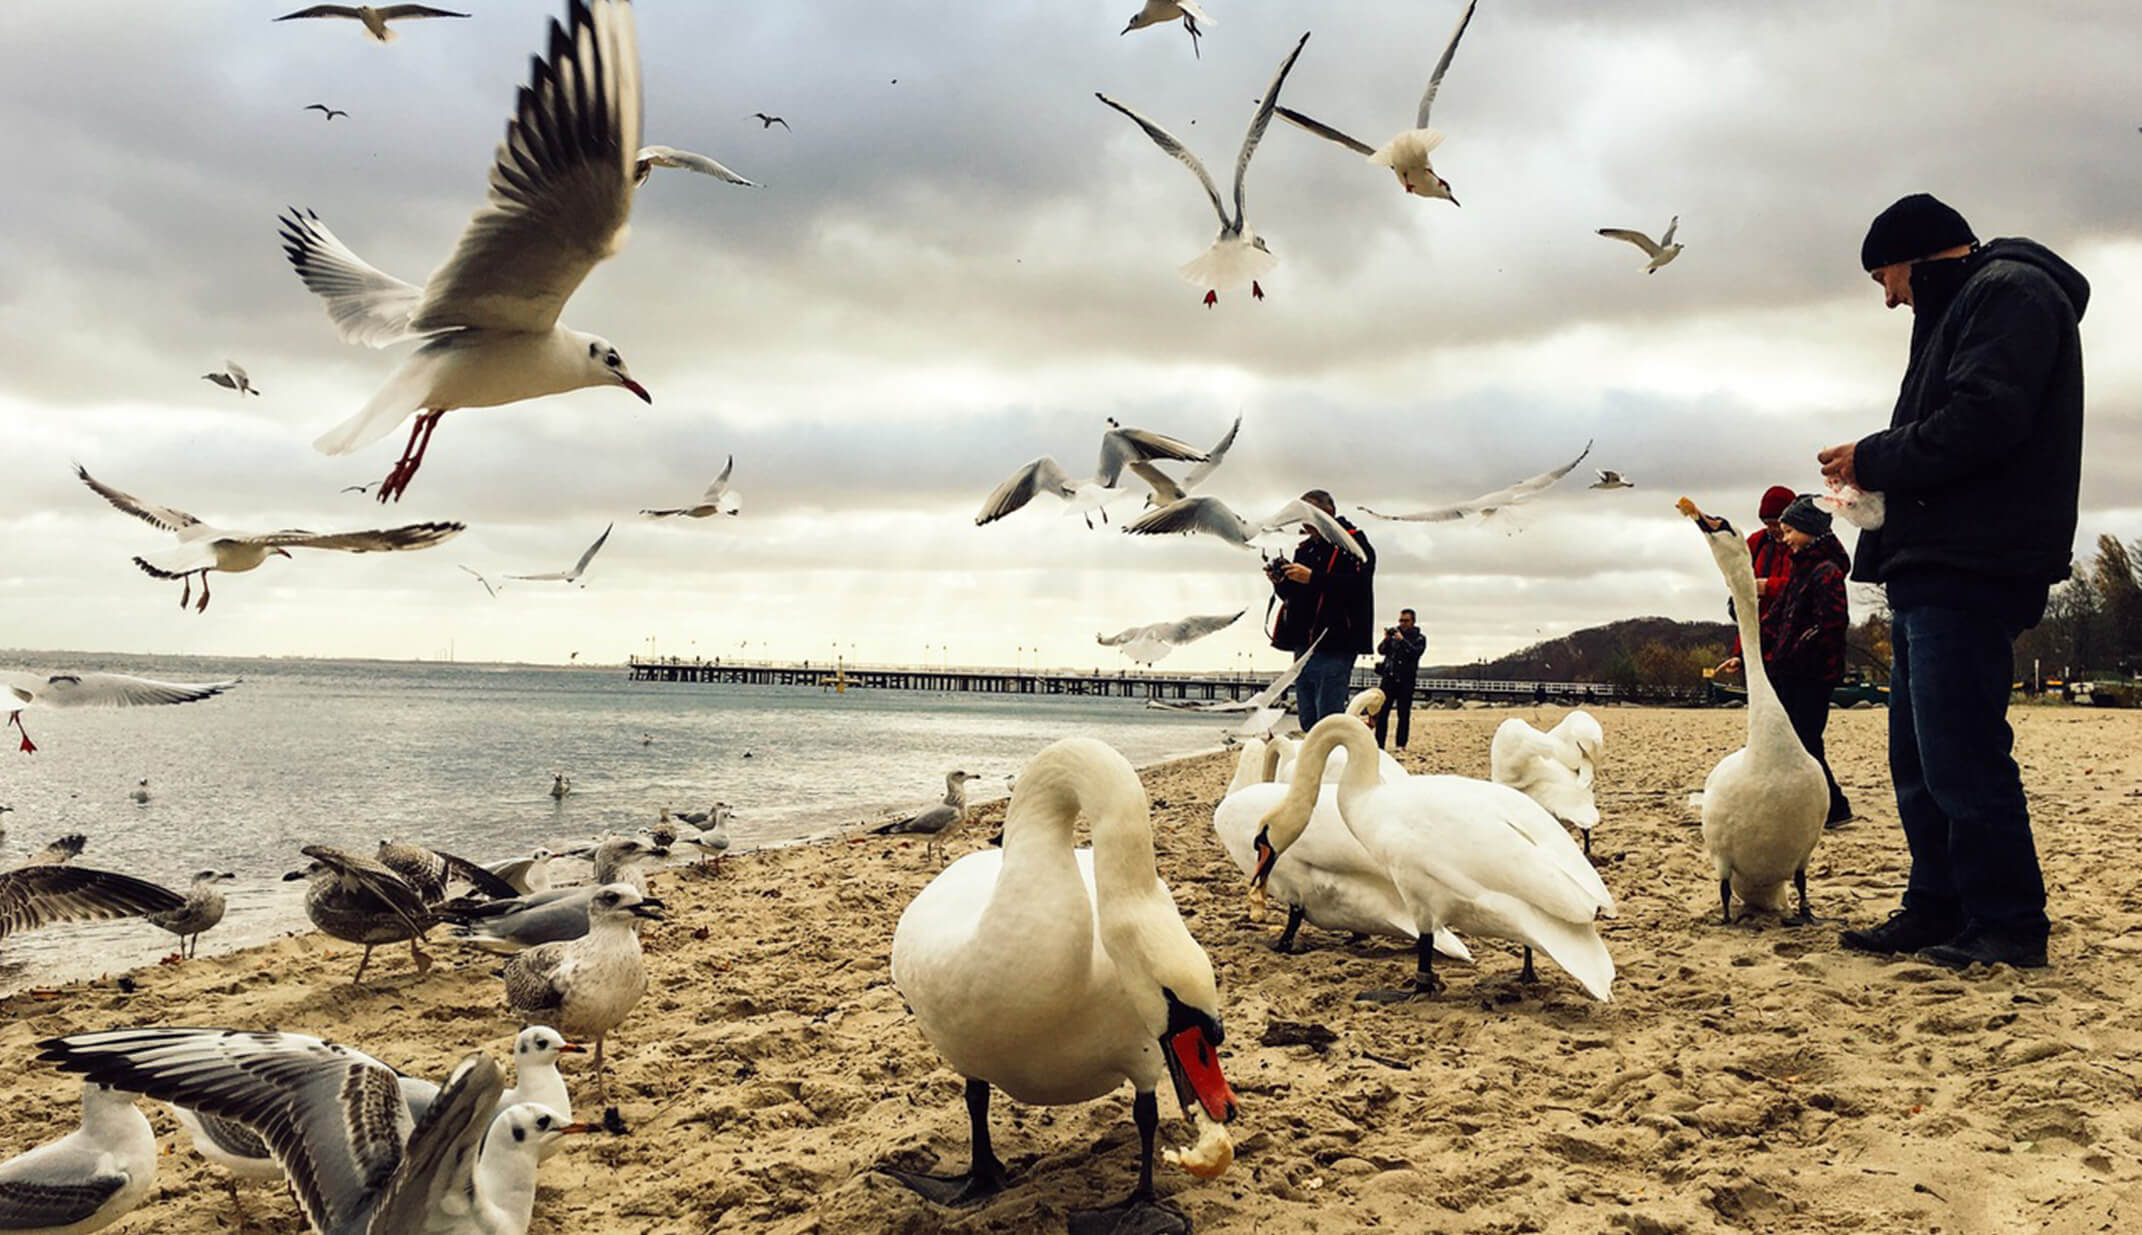 baltic sea birds beach photography photographers funny seagull fall winter poland people adventure